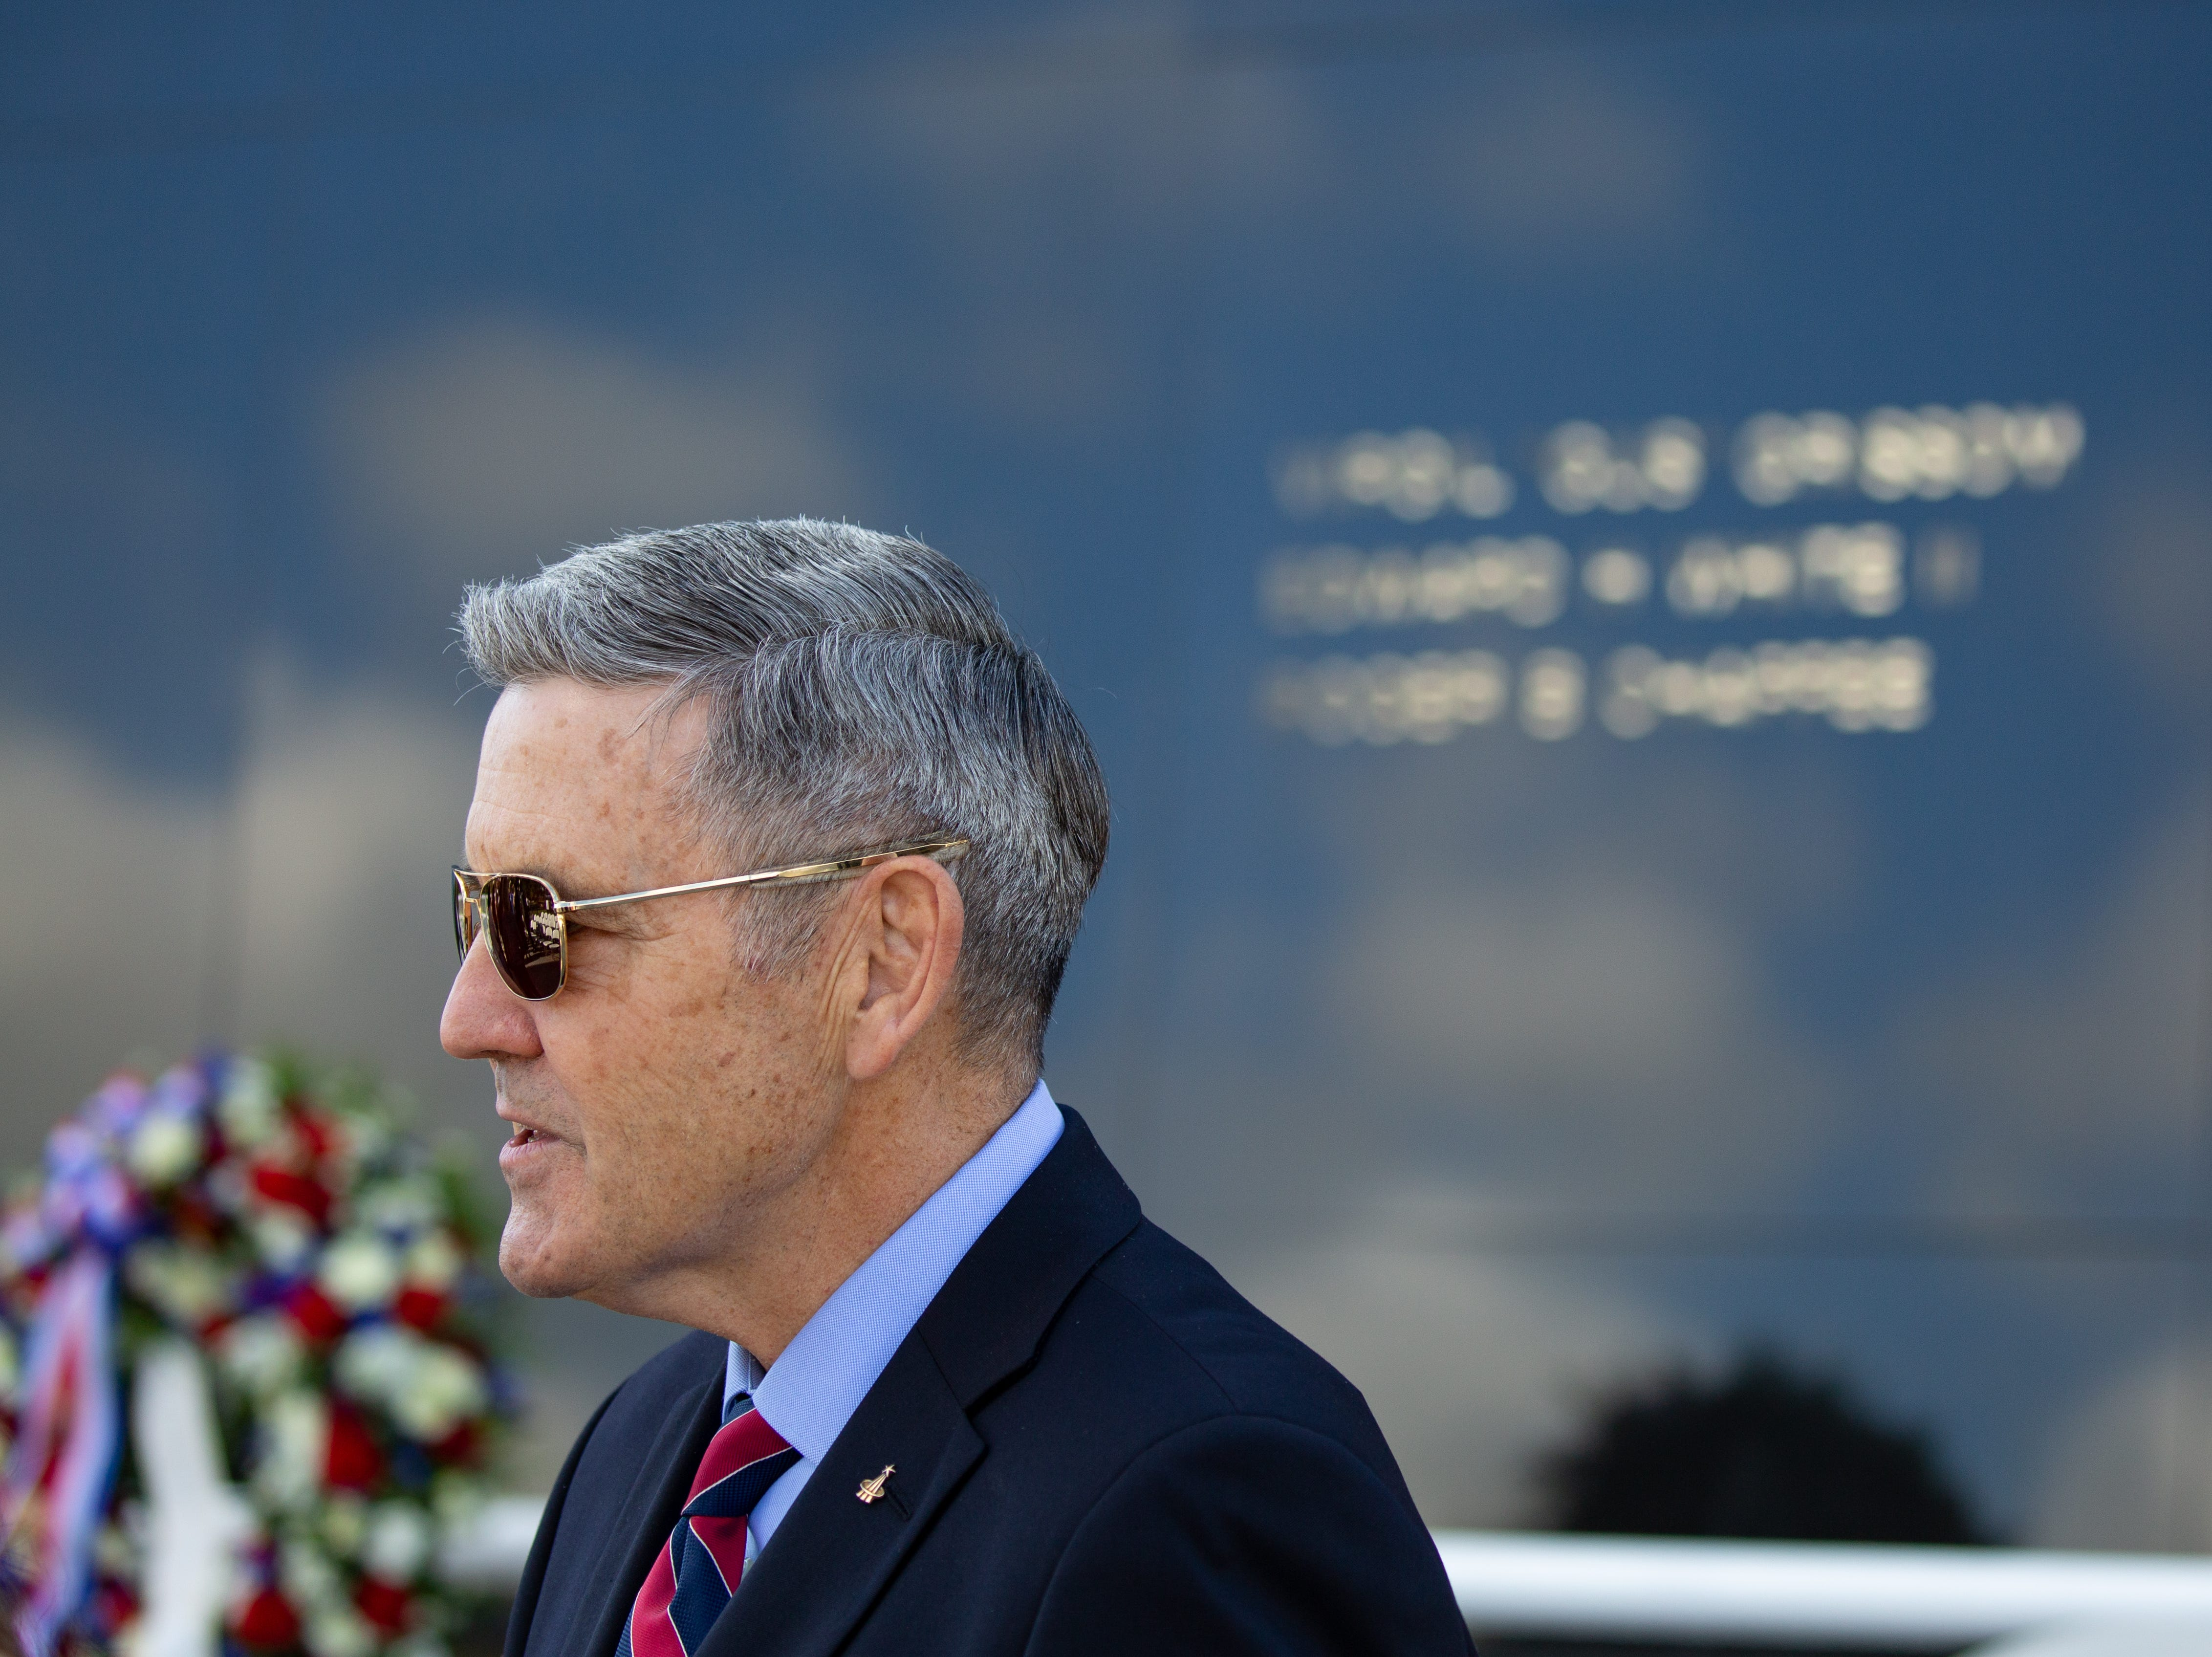 Kennedy Space Center Director Bob Cabana is seen at the Space Mirror Memorial for NASA's Day of Remembrance on Thursday, Feb. 7, 2019. The national event remembers fallen astronauts.